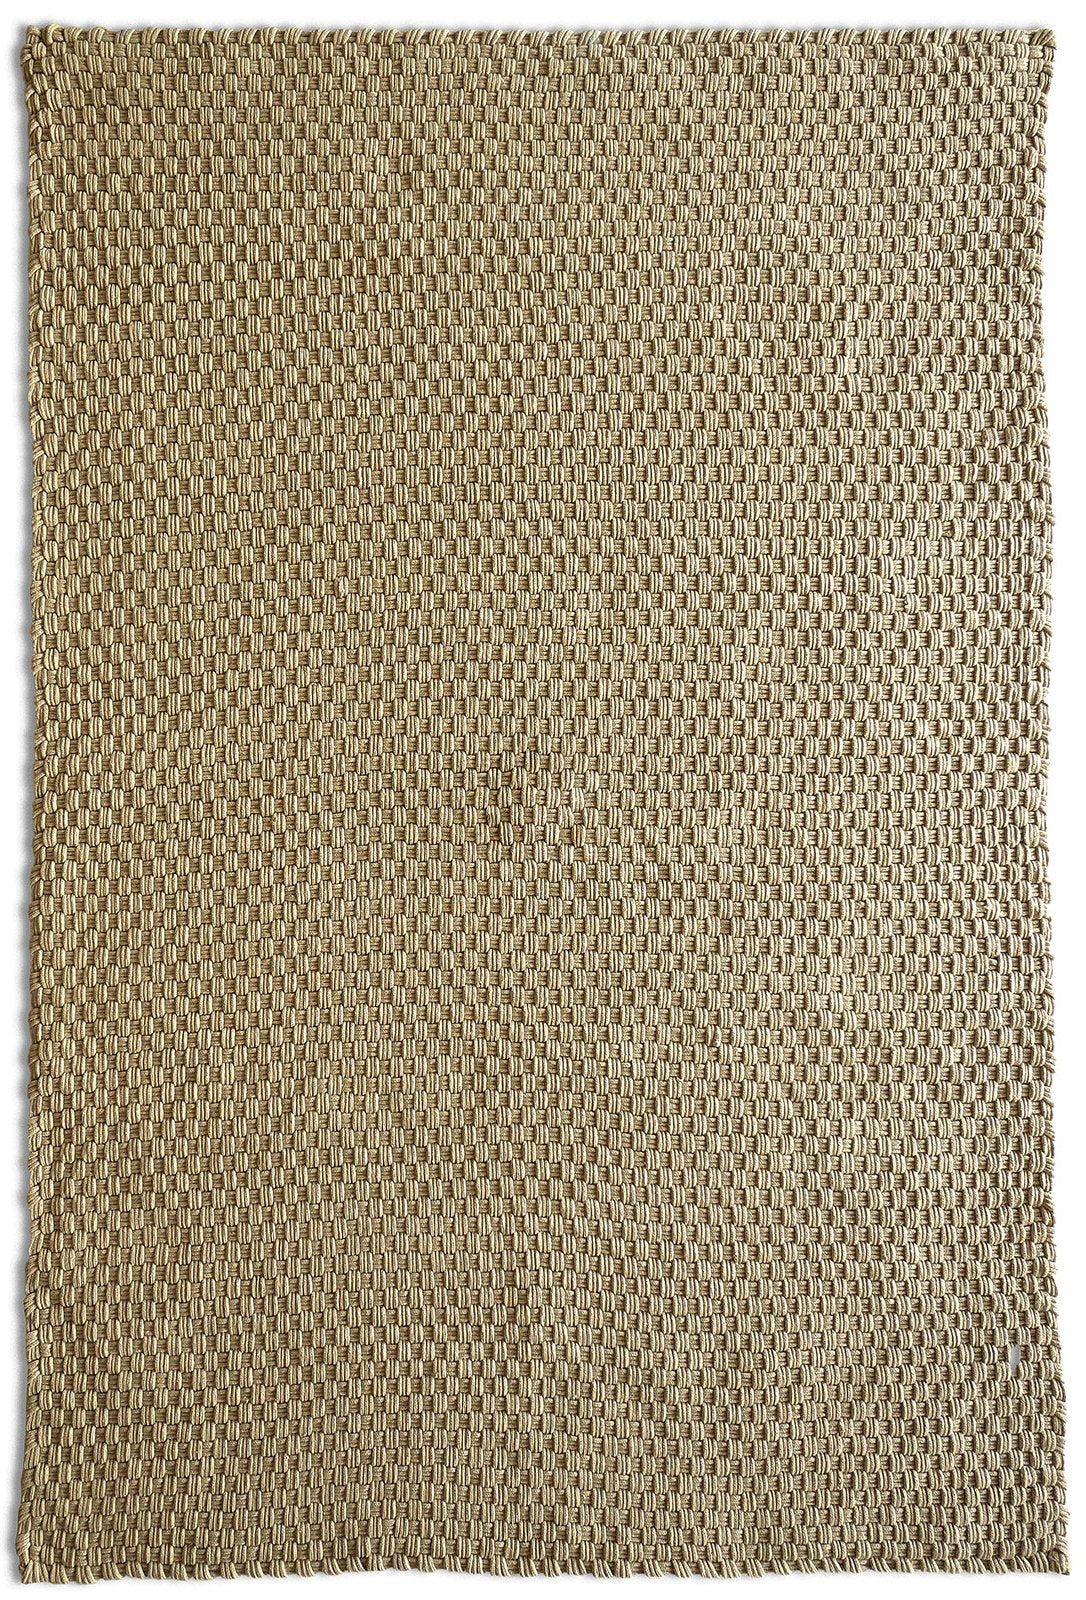 Kyoto Weave Beige All-Weather Rug Rugs